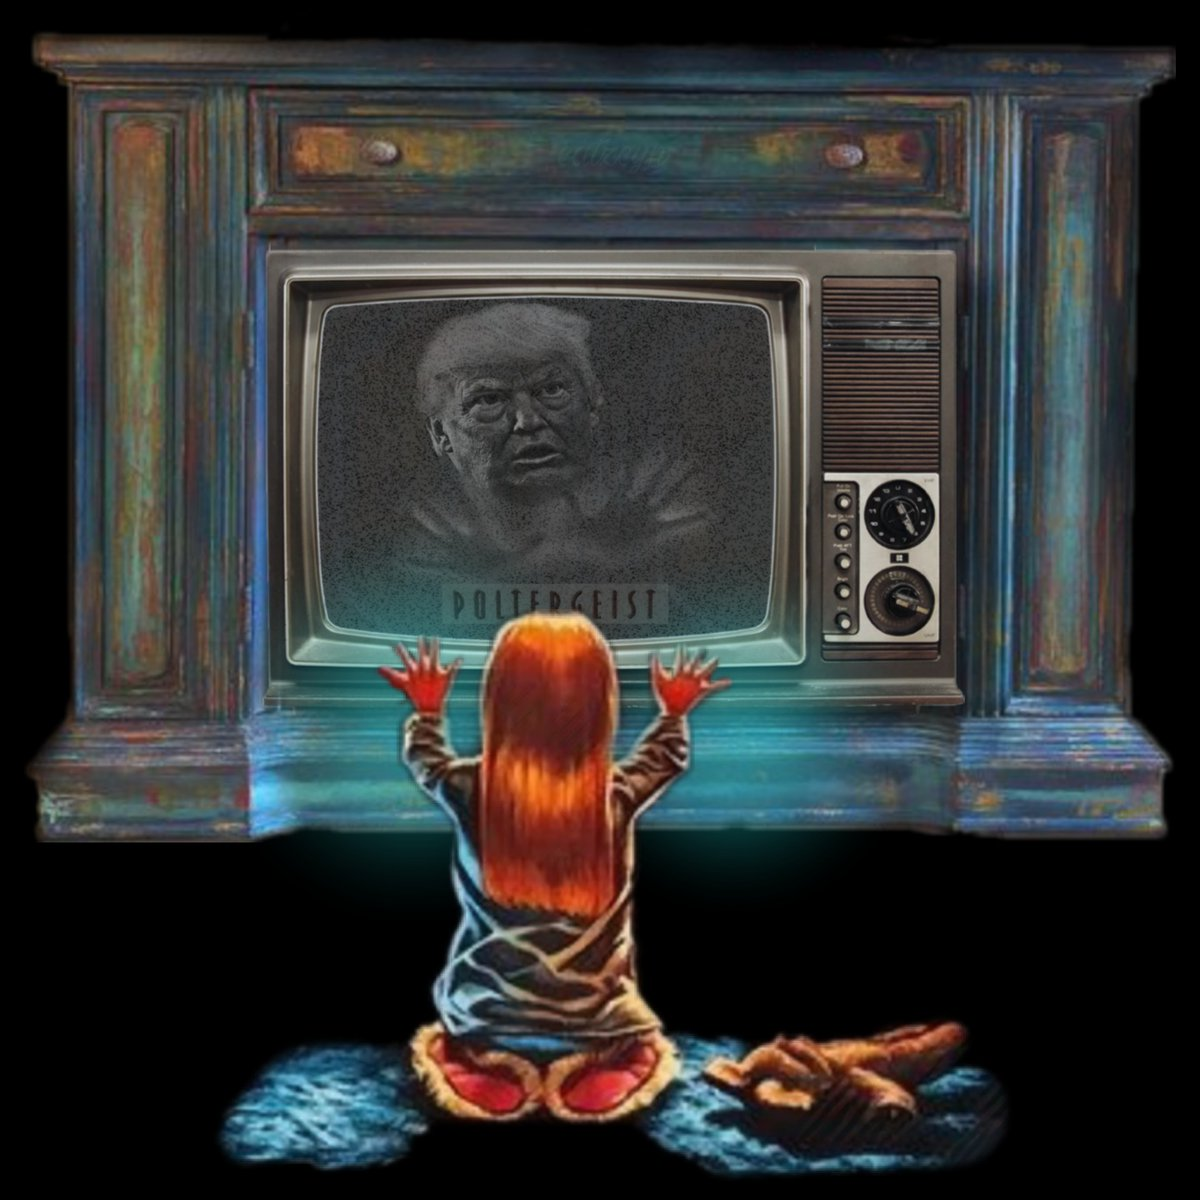 I can't move away from my TV set waiting for the next shoe to drop.  #TrumpTreason #Trump #Biden #TrumpCrimeFamilyForPrison2021  #InsurrectionHasConsequences  #CapitolHill #Traitors #Traitor #TraitorsSupportTraitorTrump #ArrestTrump #ConvictTrump   What a Nightmare!